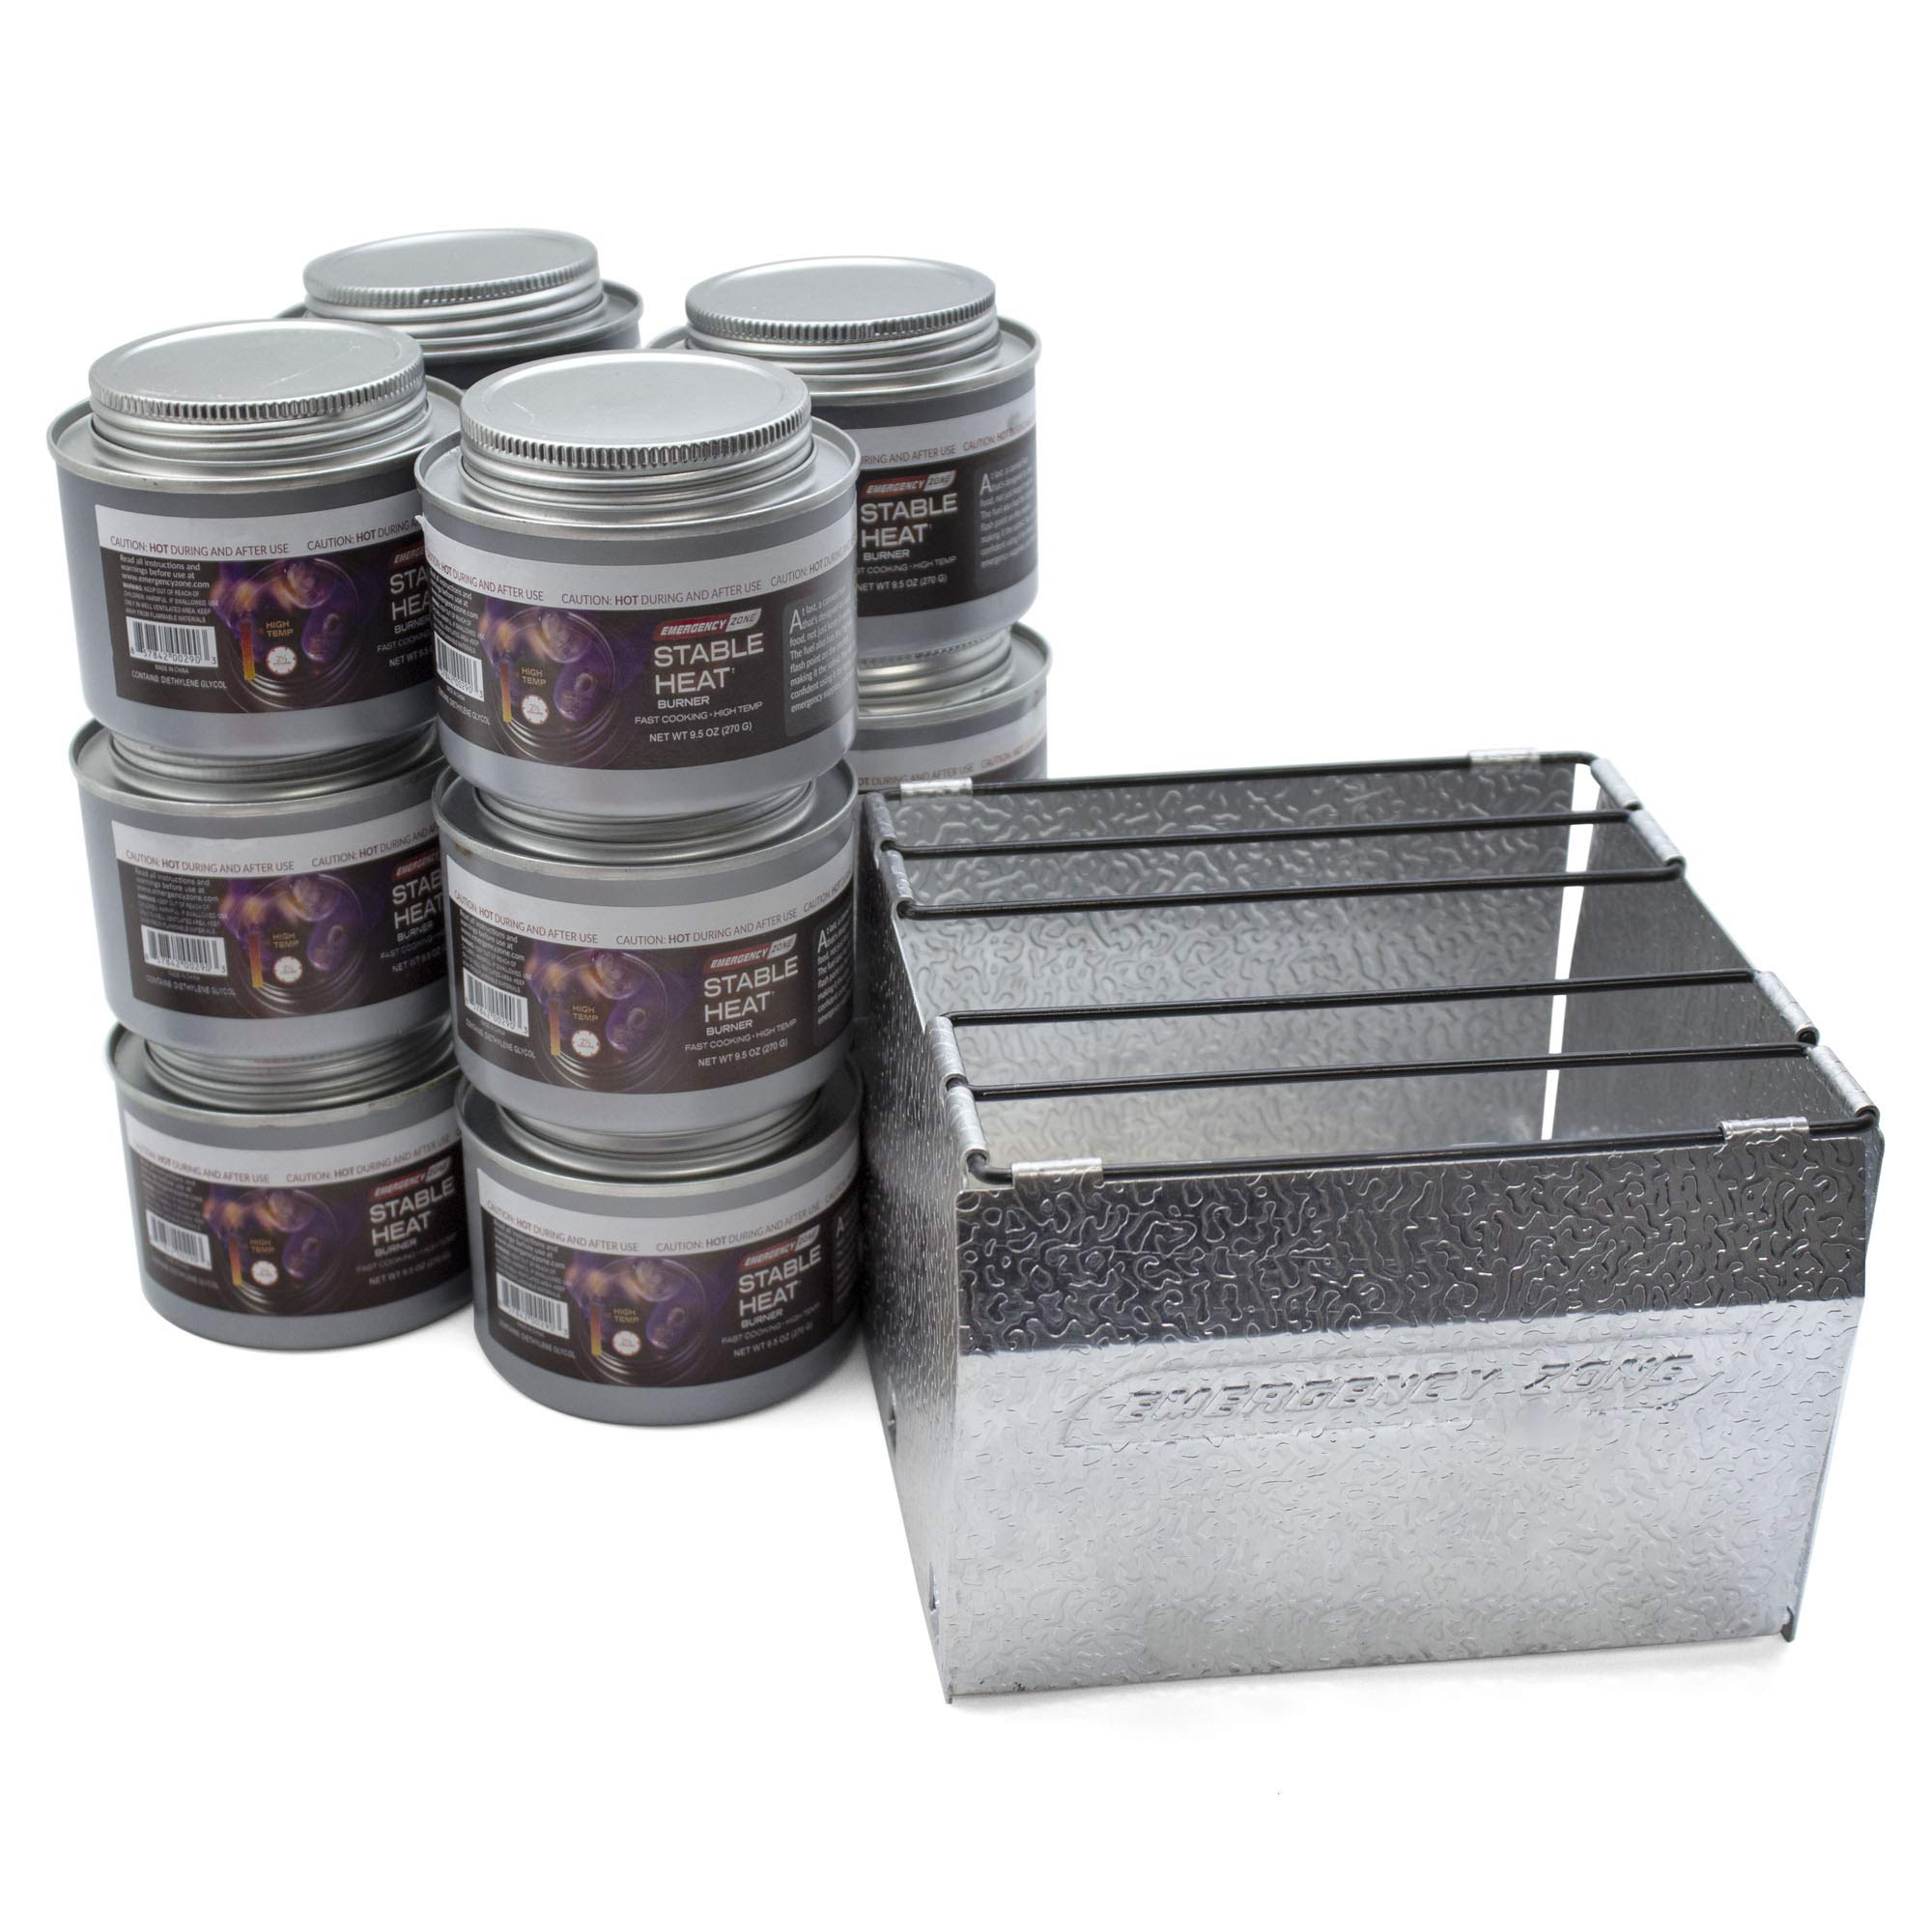 Emergency Cooking Fuel Storage Set with Stove, 20+ Year Shelf Life. 12 Fuel Cans Pack by Emergency Zone